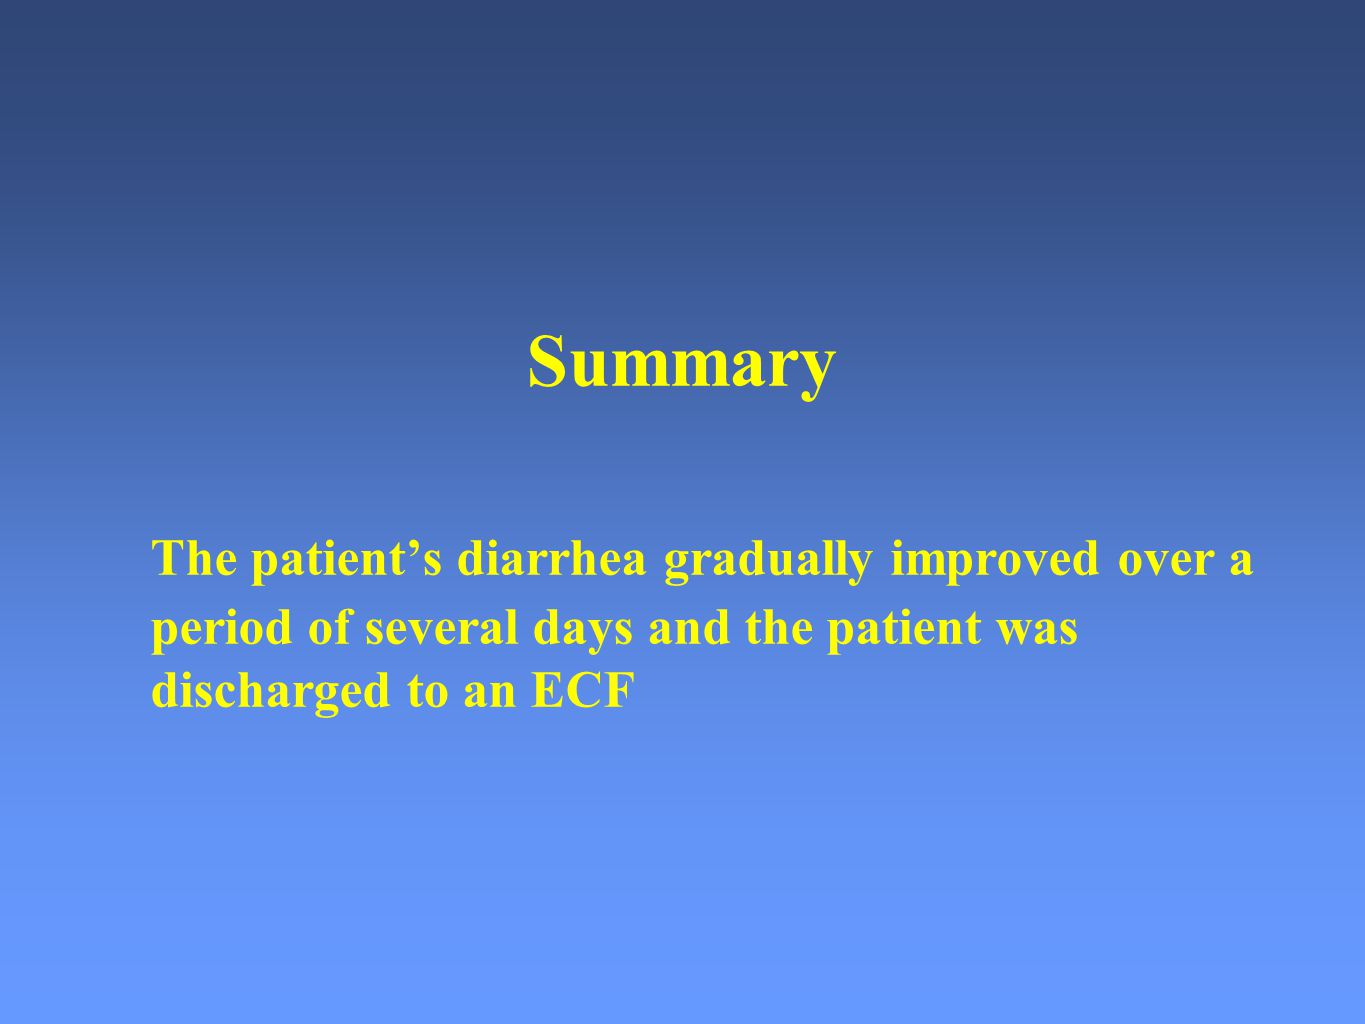 Summary. The patient's diarrhea gradually improved over a